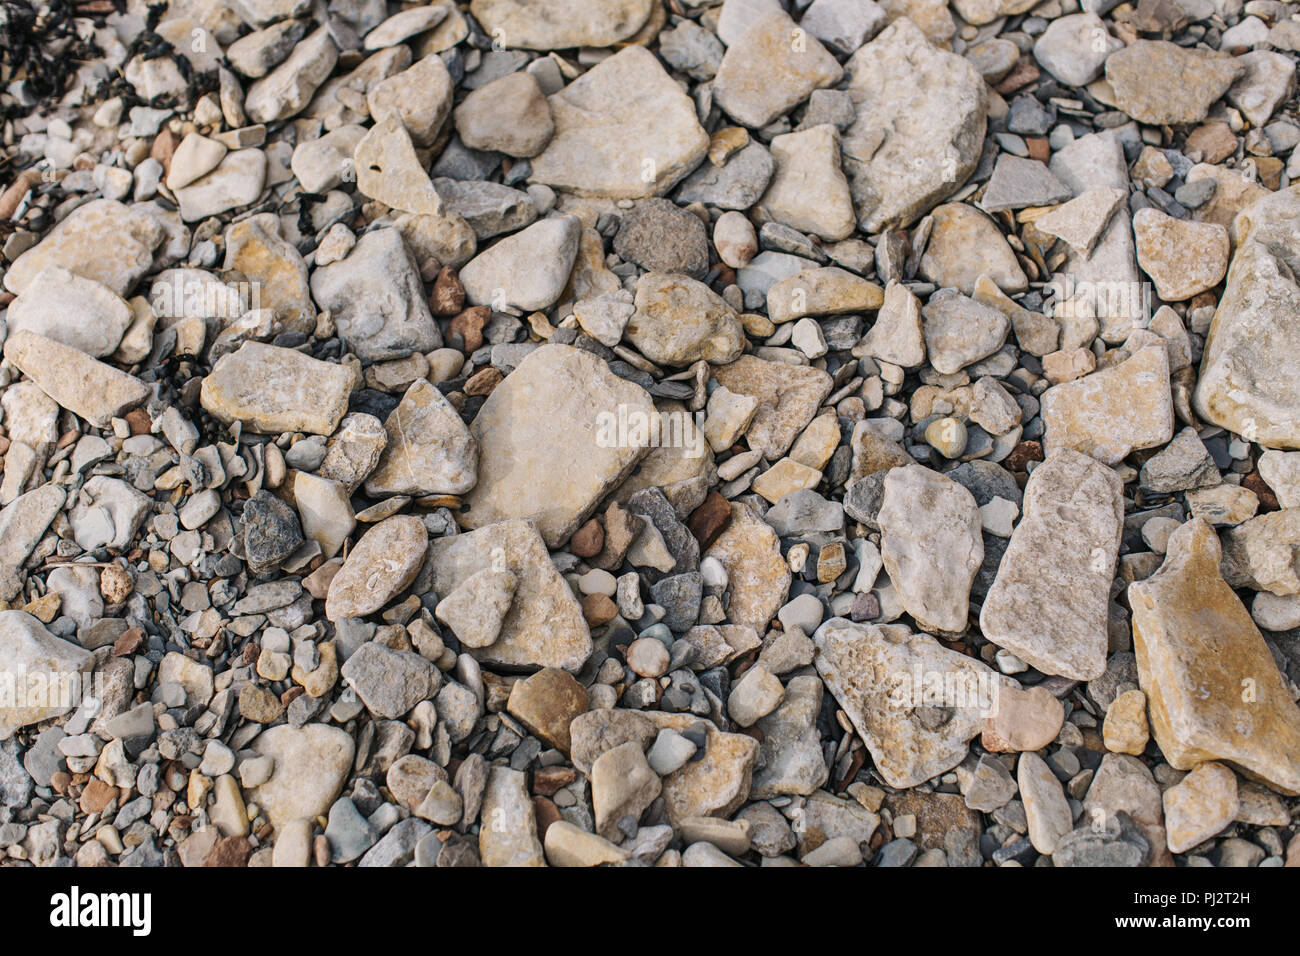 Looking down at the surface of a rocky beach with many rocks, stones and pebbles of different shapes and sizes in muted brown and orange colours - Stock Image